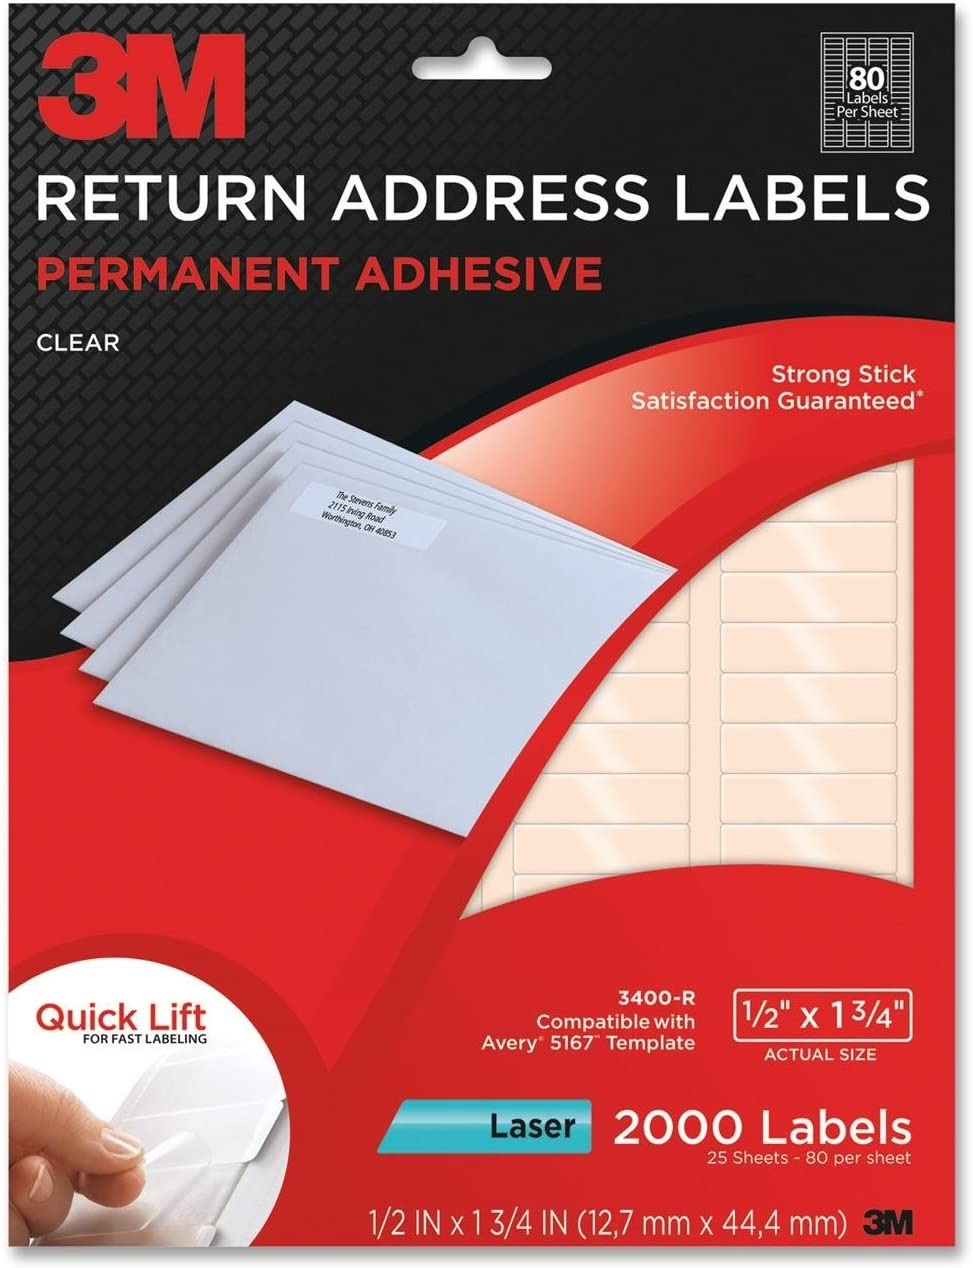 3M Permanent Adhesive Return Address Labels, 0.5 x 1.75 Inches, Clear, 2000 per Pack (3400-R)